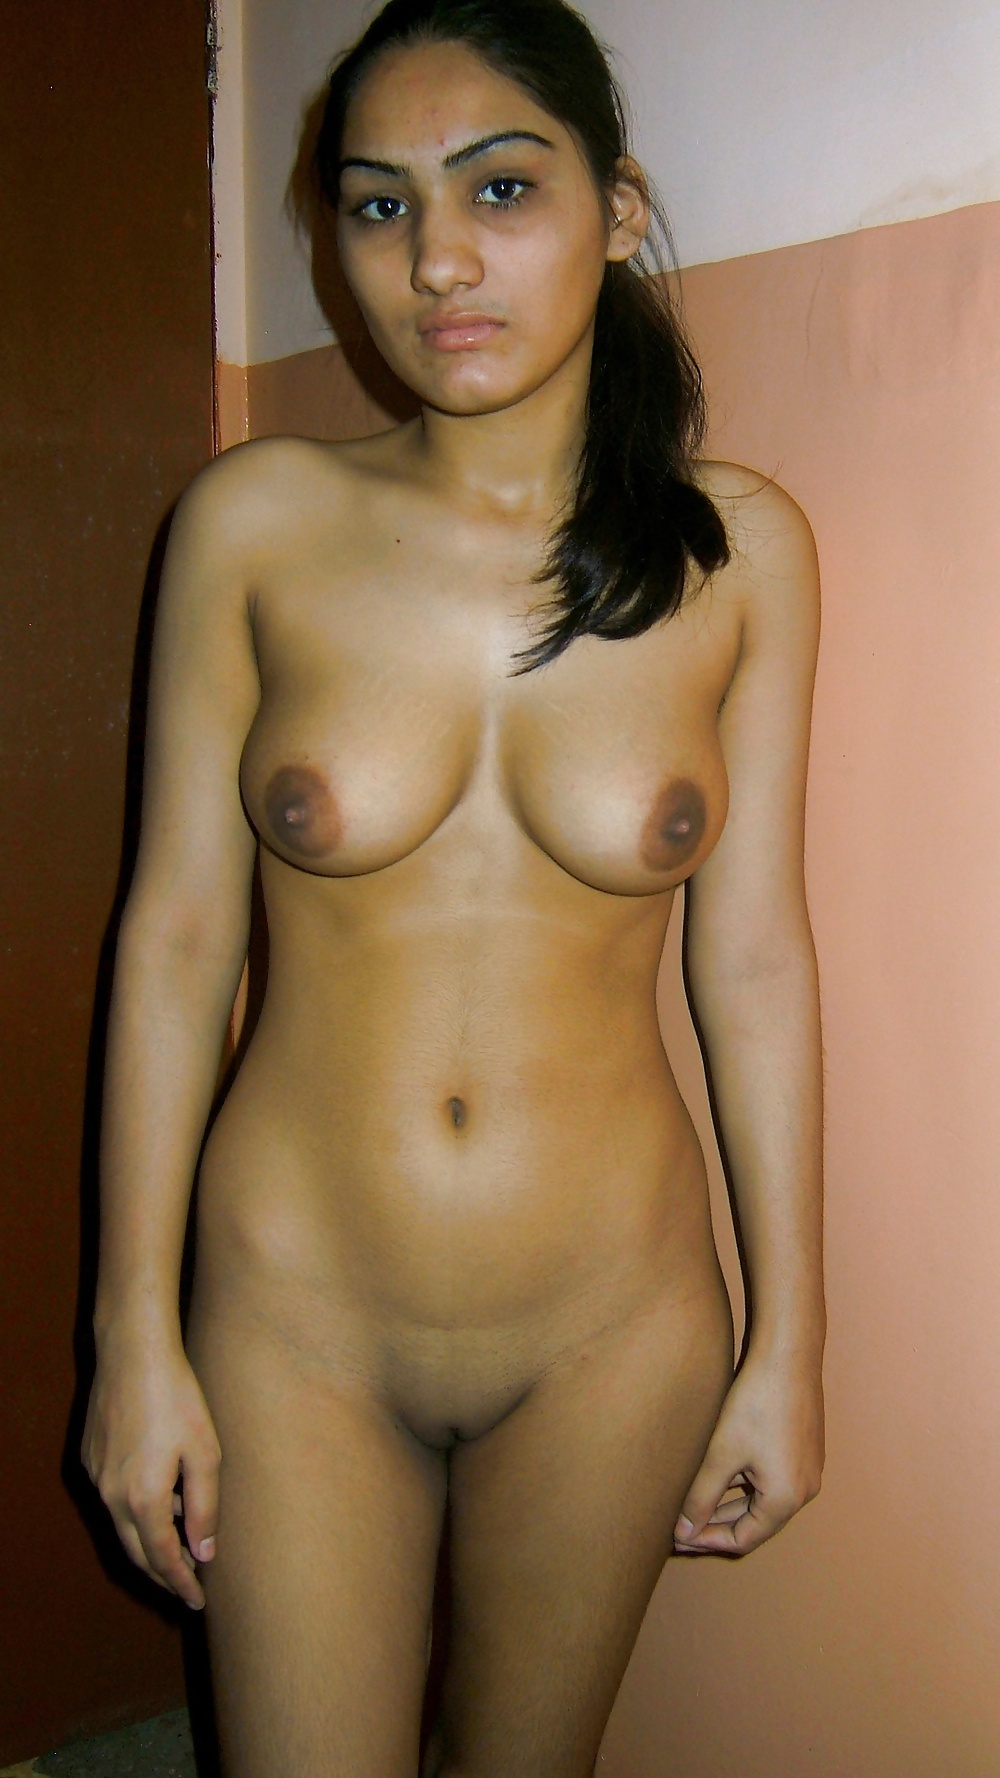 Big breast beautiful girl naked